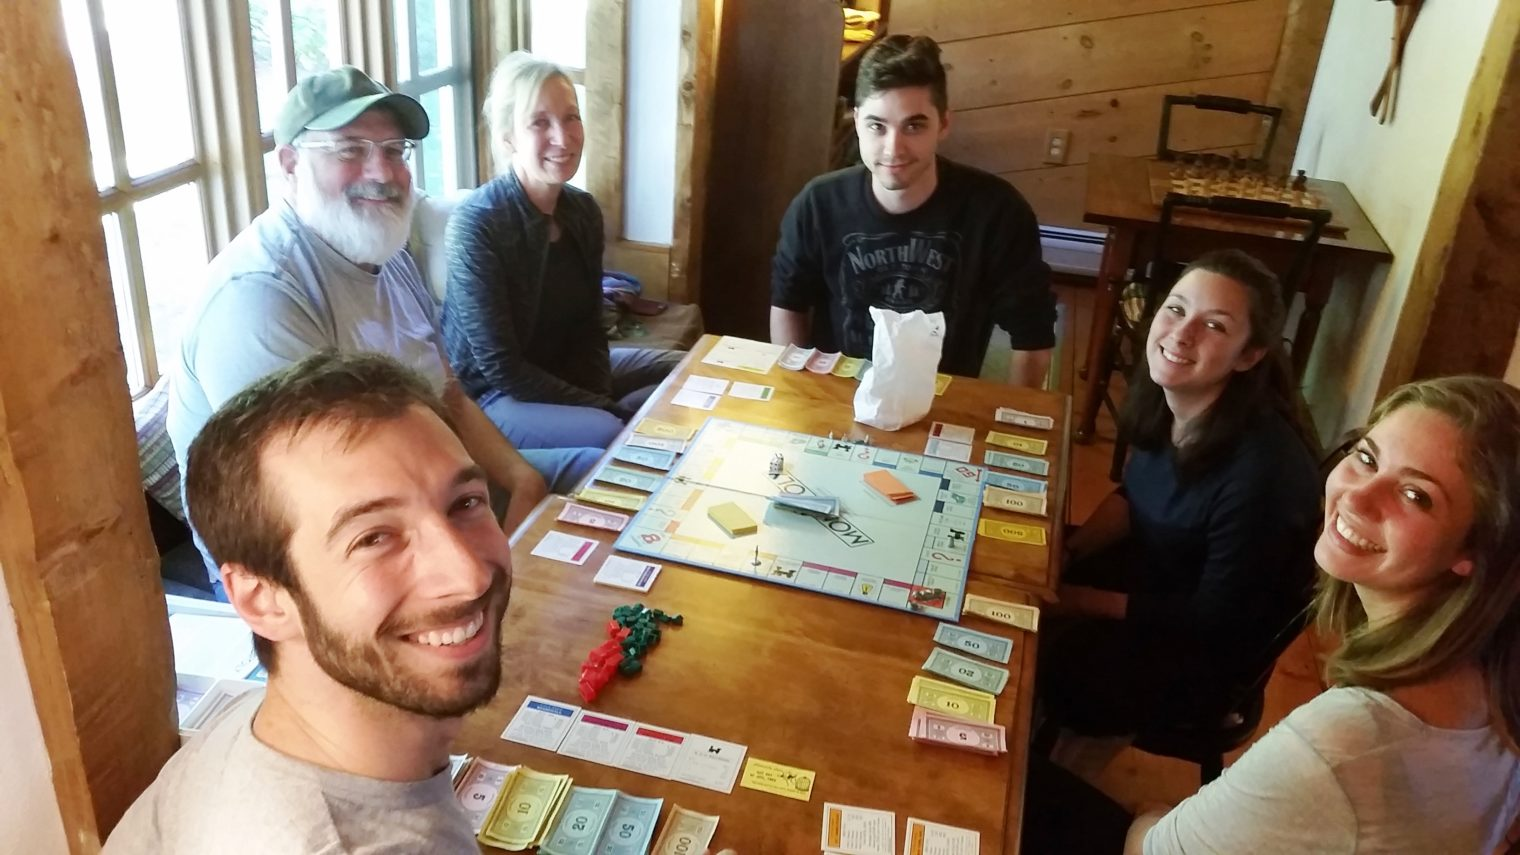 Guests play board games in the Snooty Fox Pub at Rabbit Hill Inn